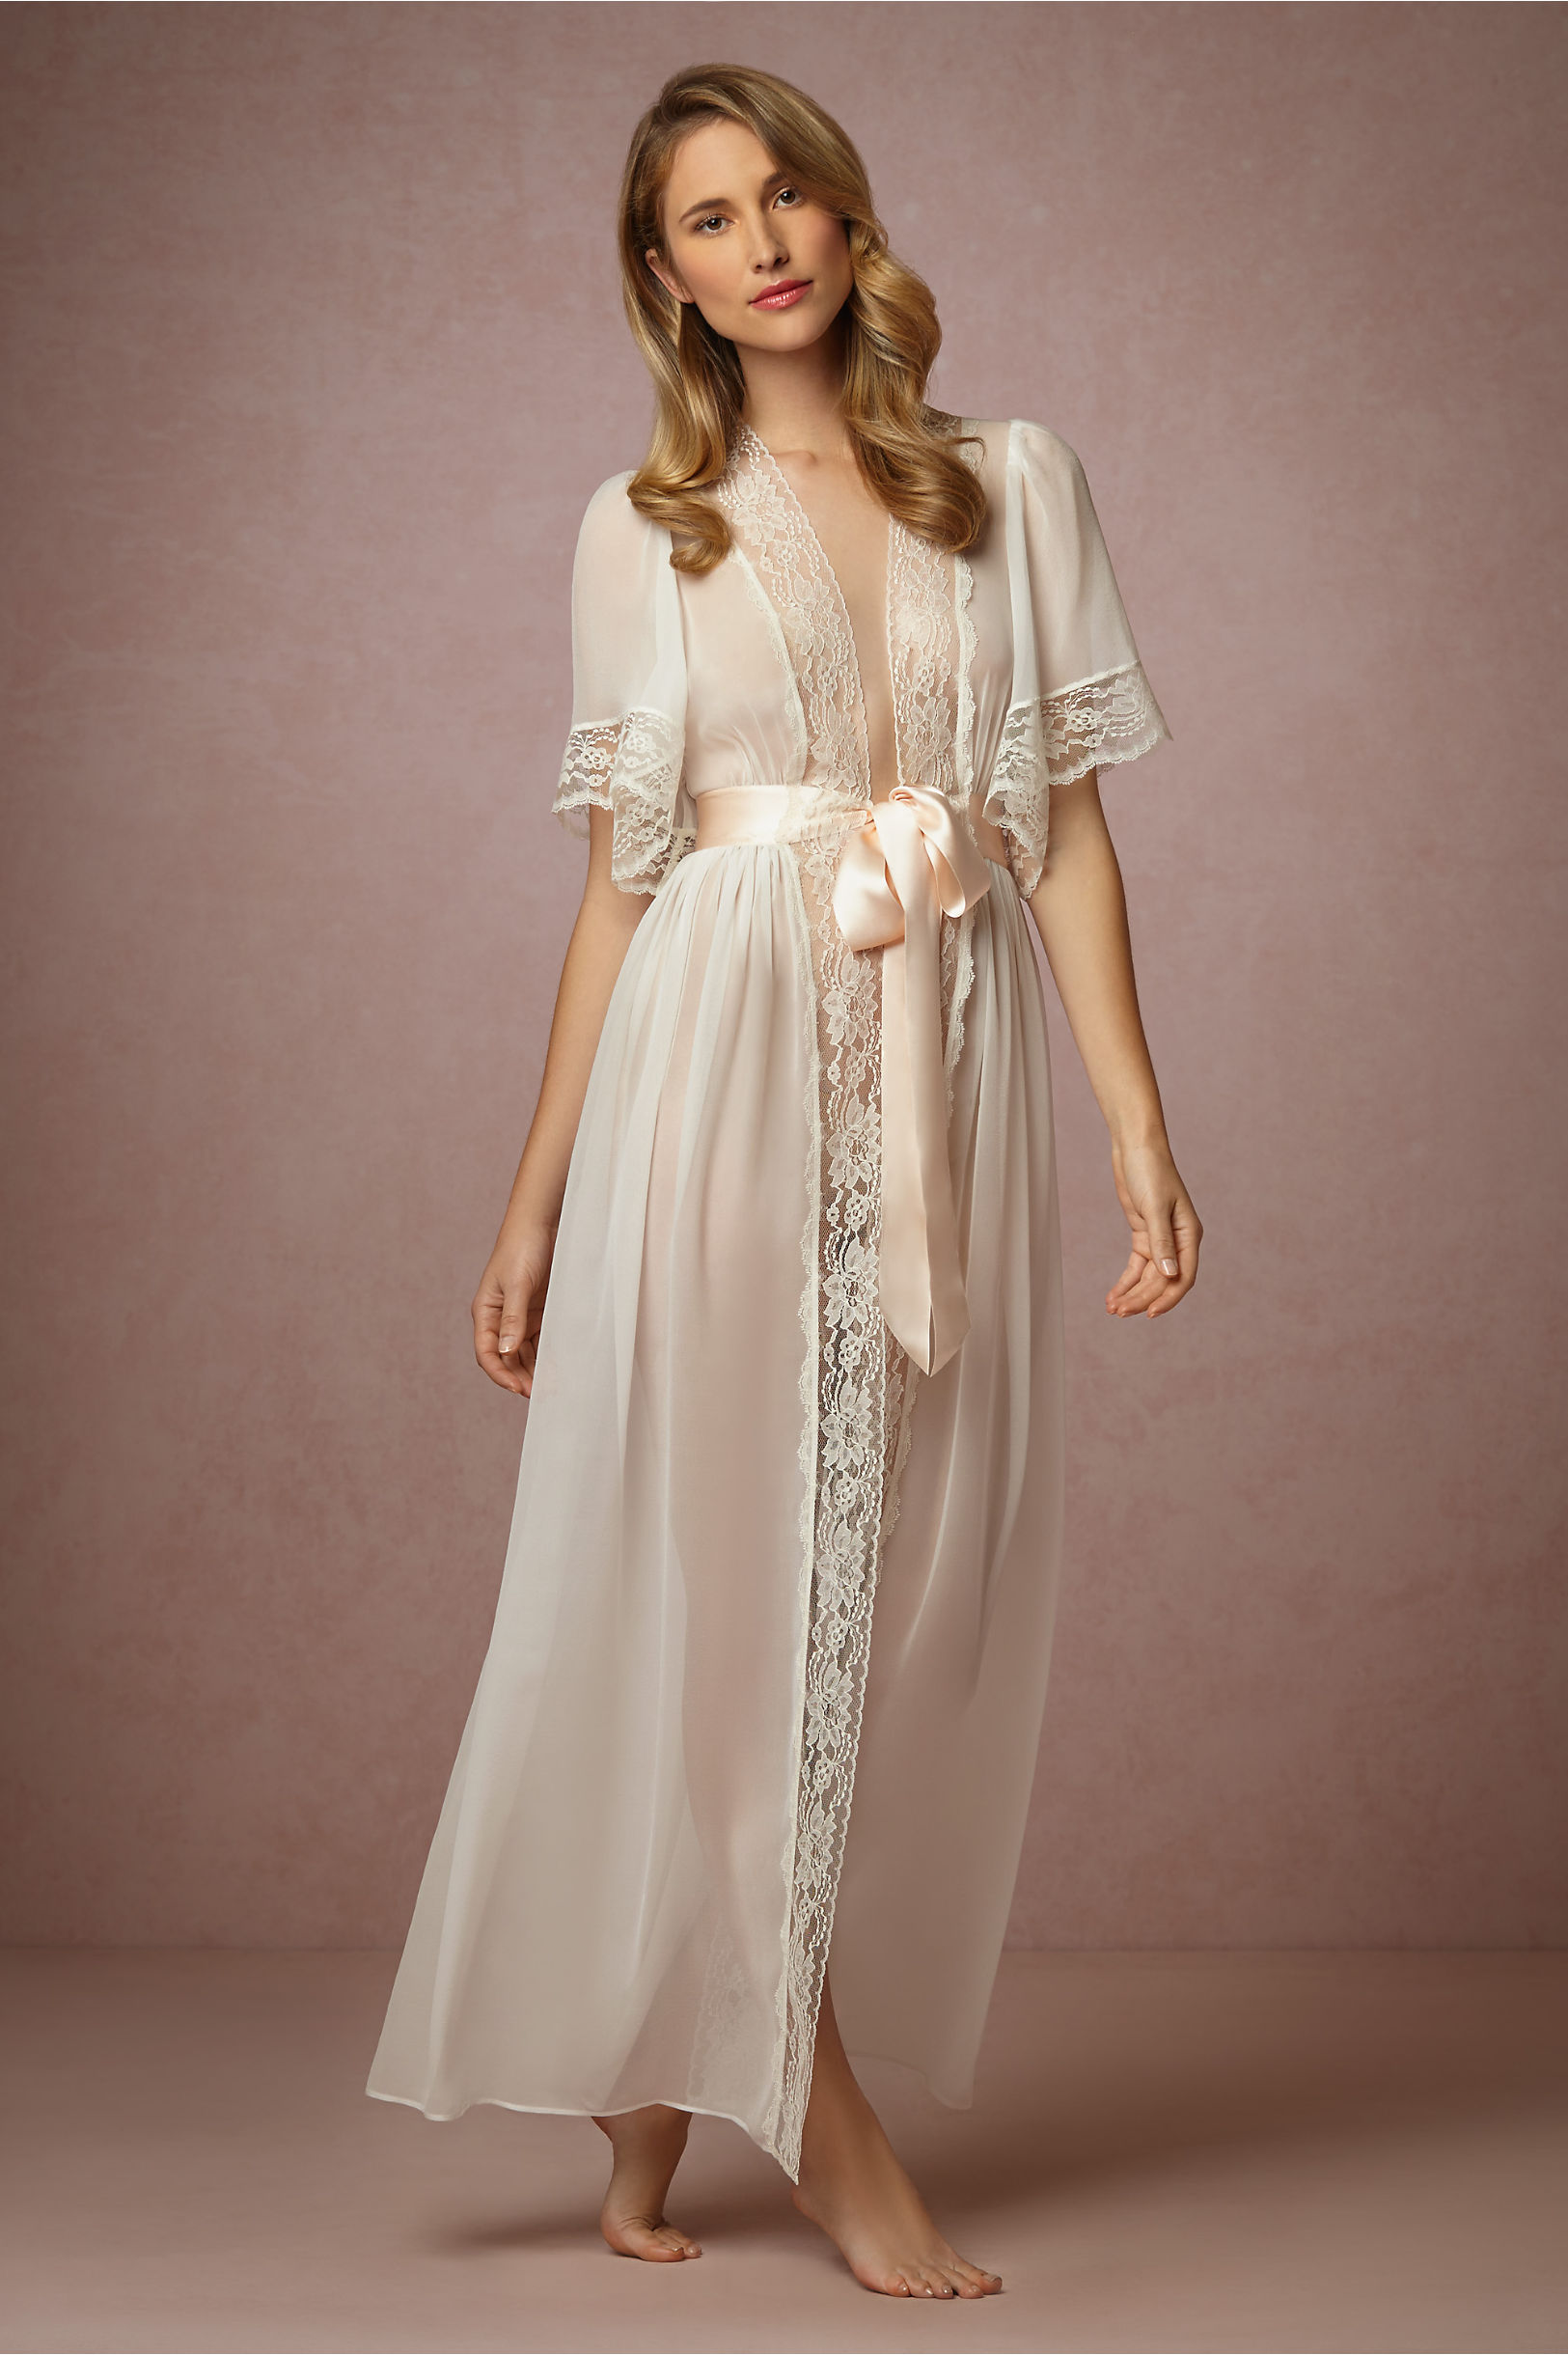 Starlet Robe in Lingerie | BHLDN